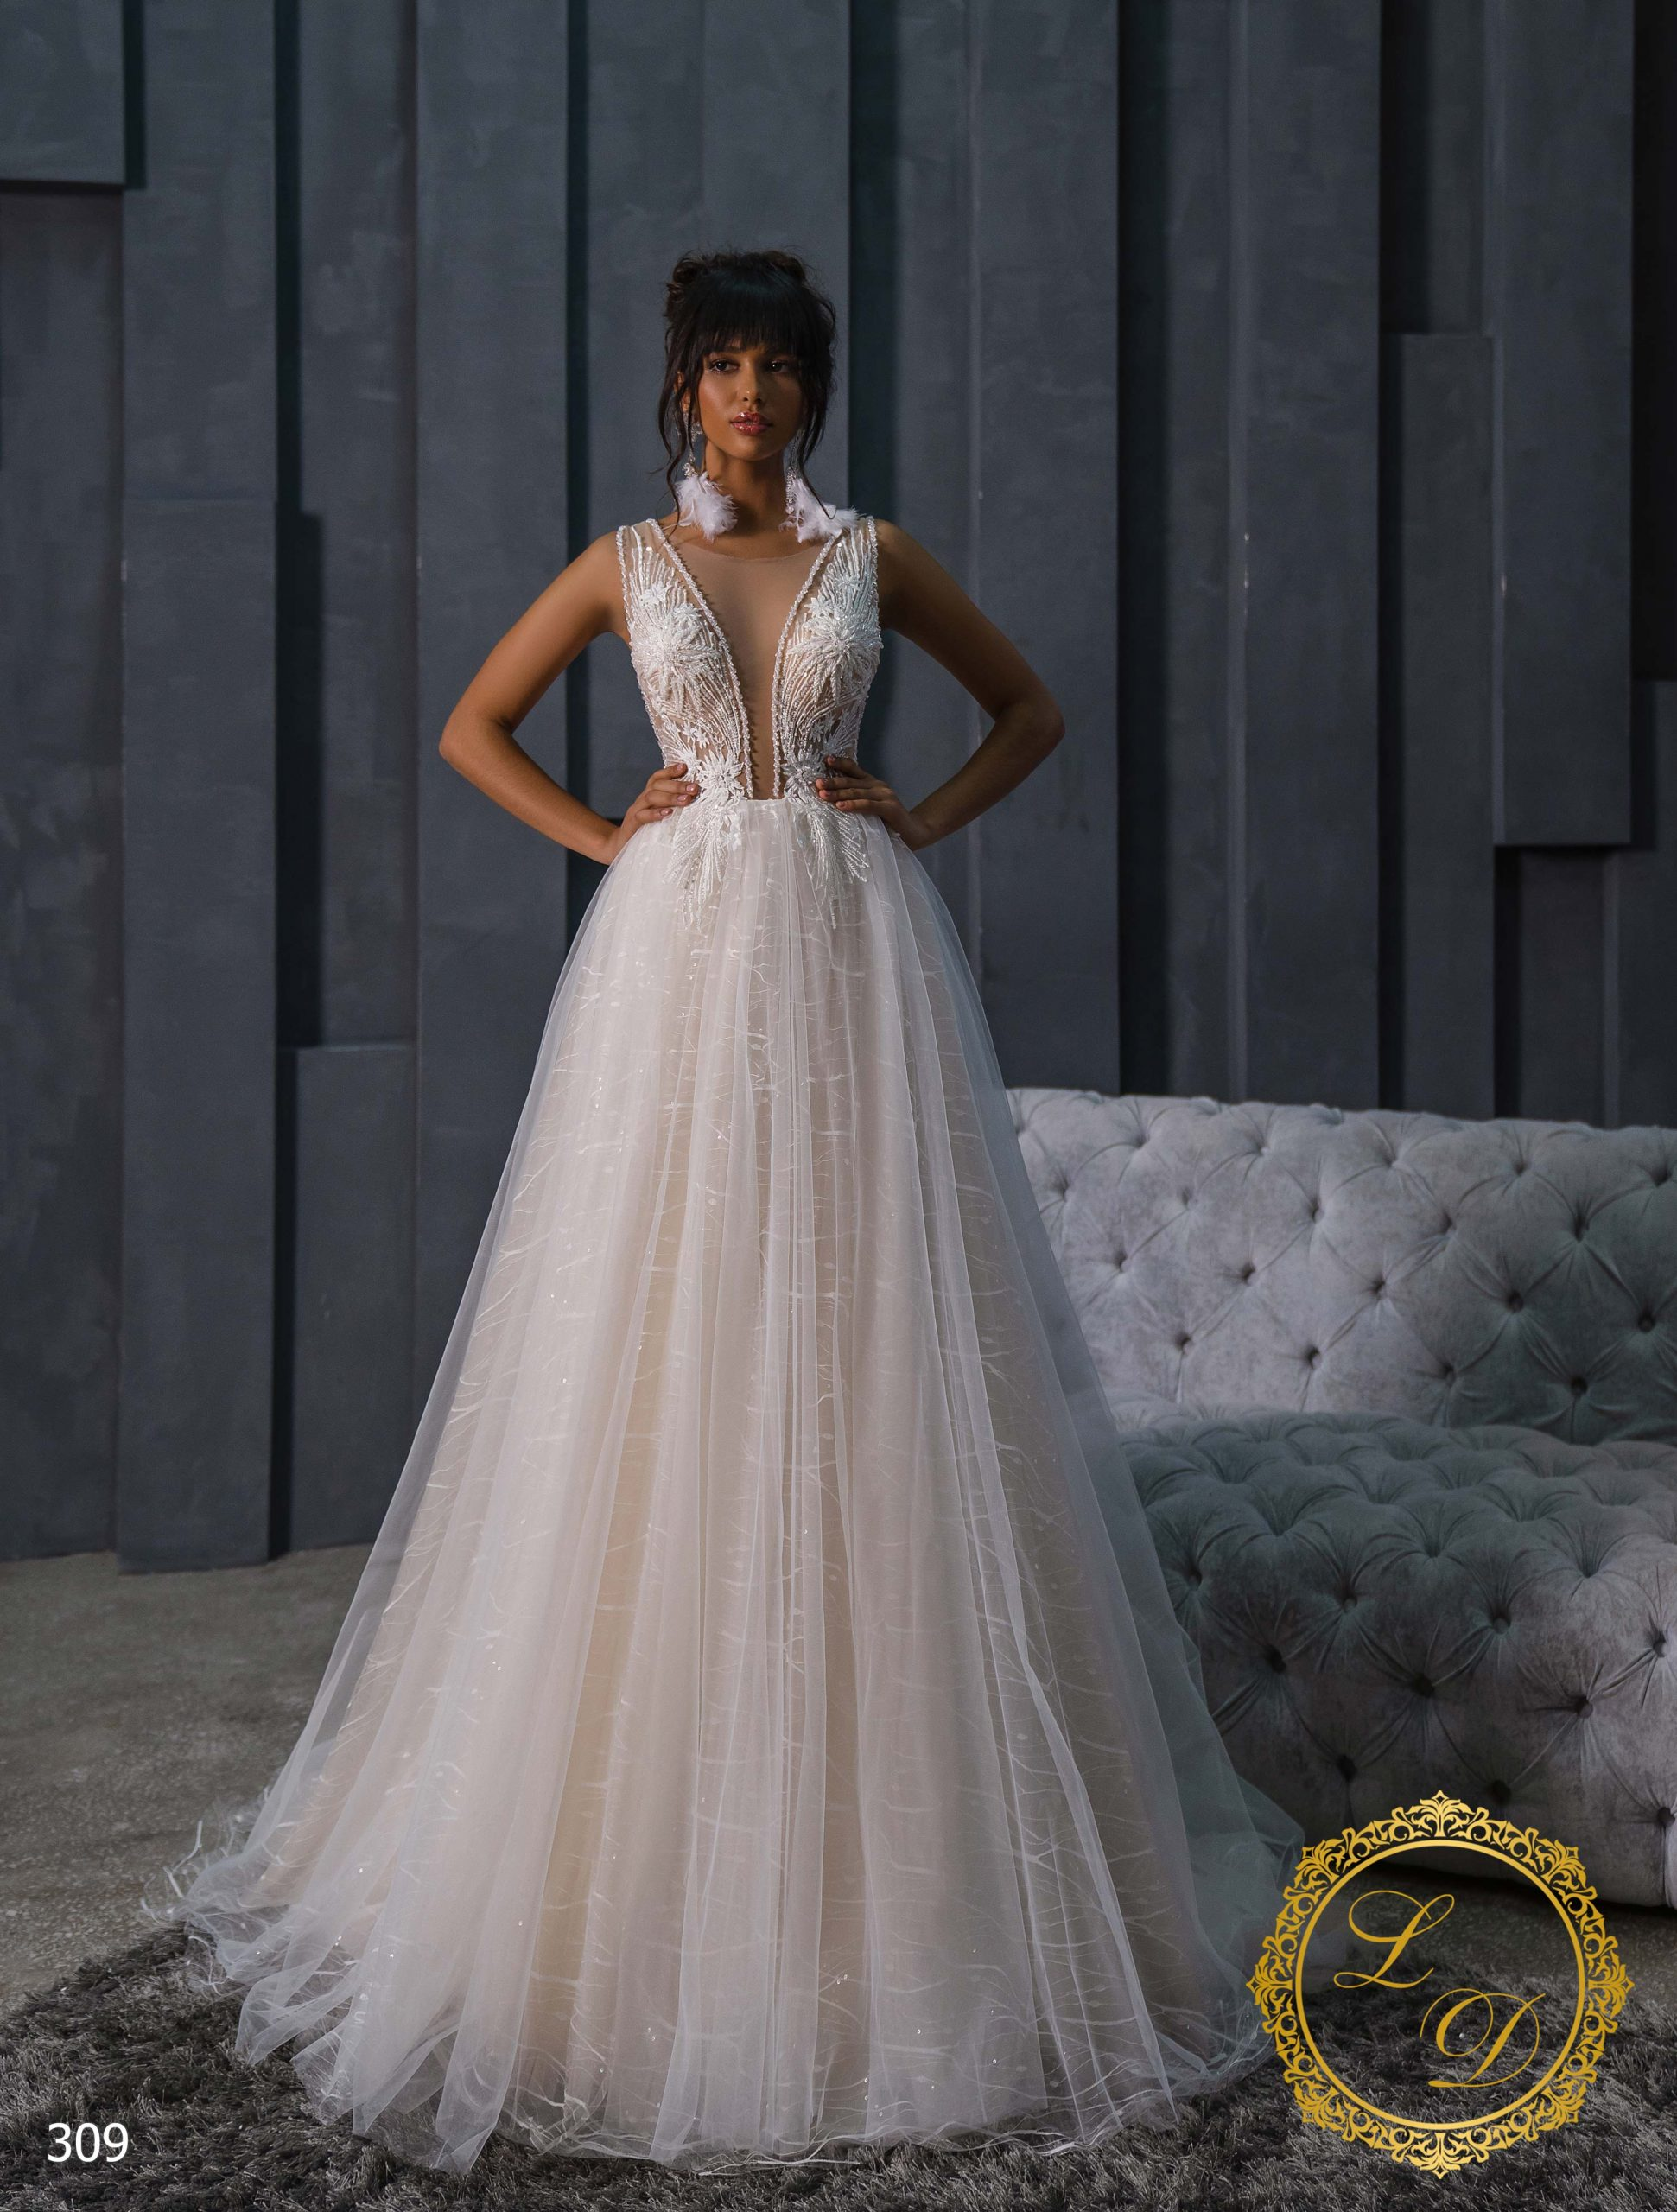 Wedding Dress Lady Di 309-1